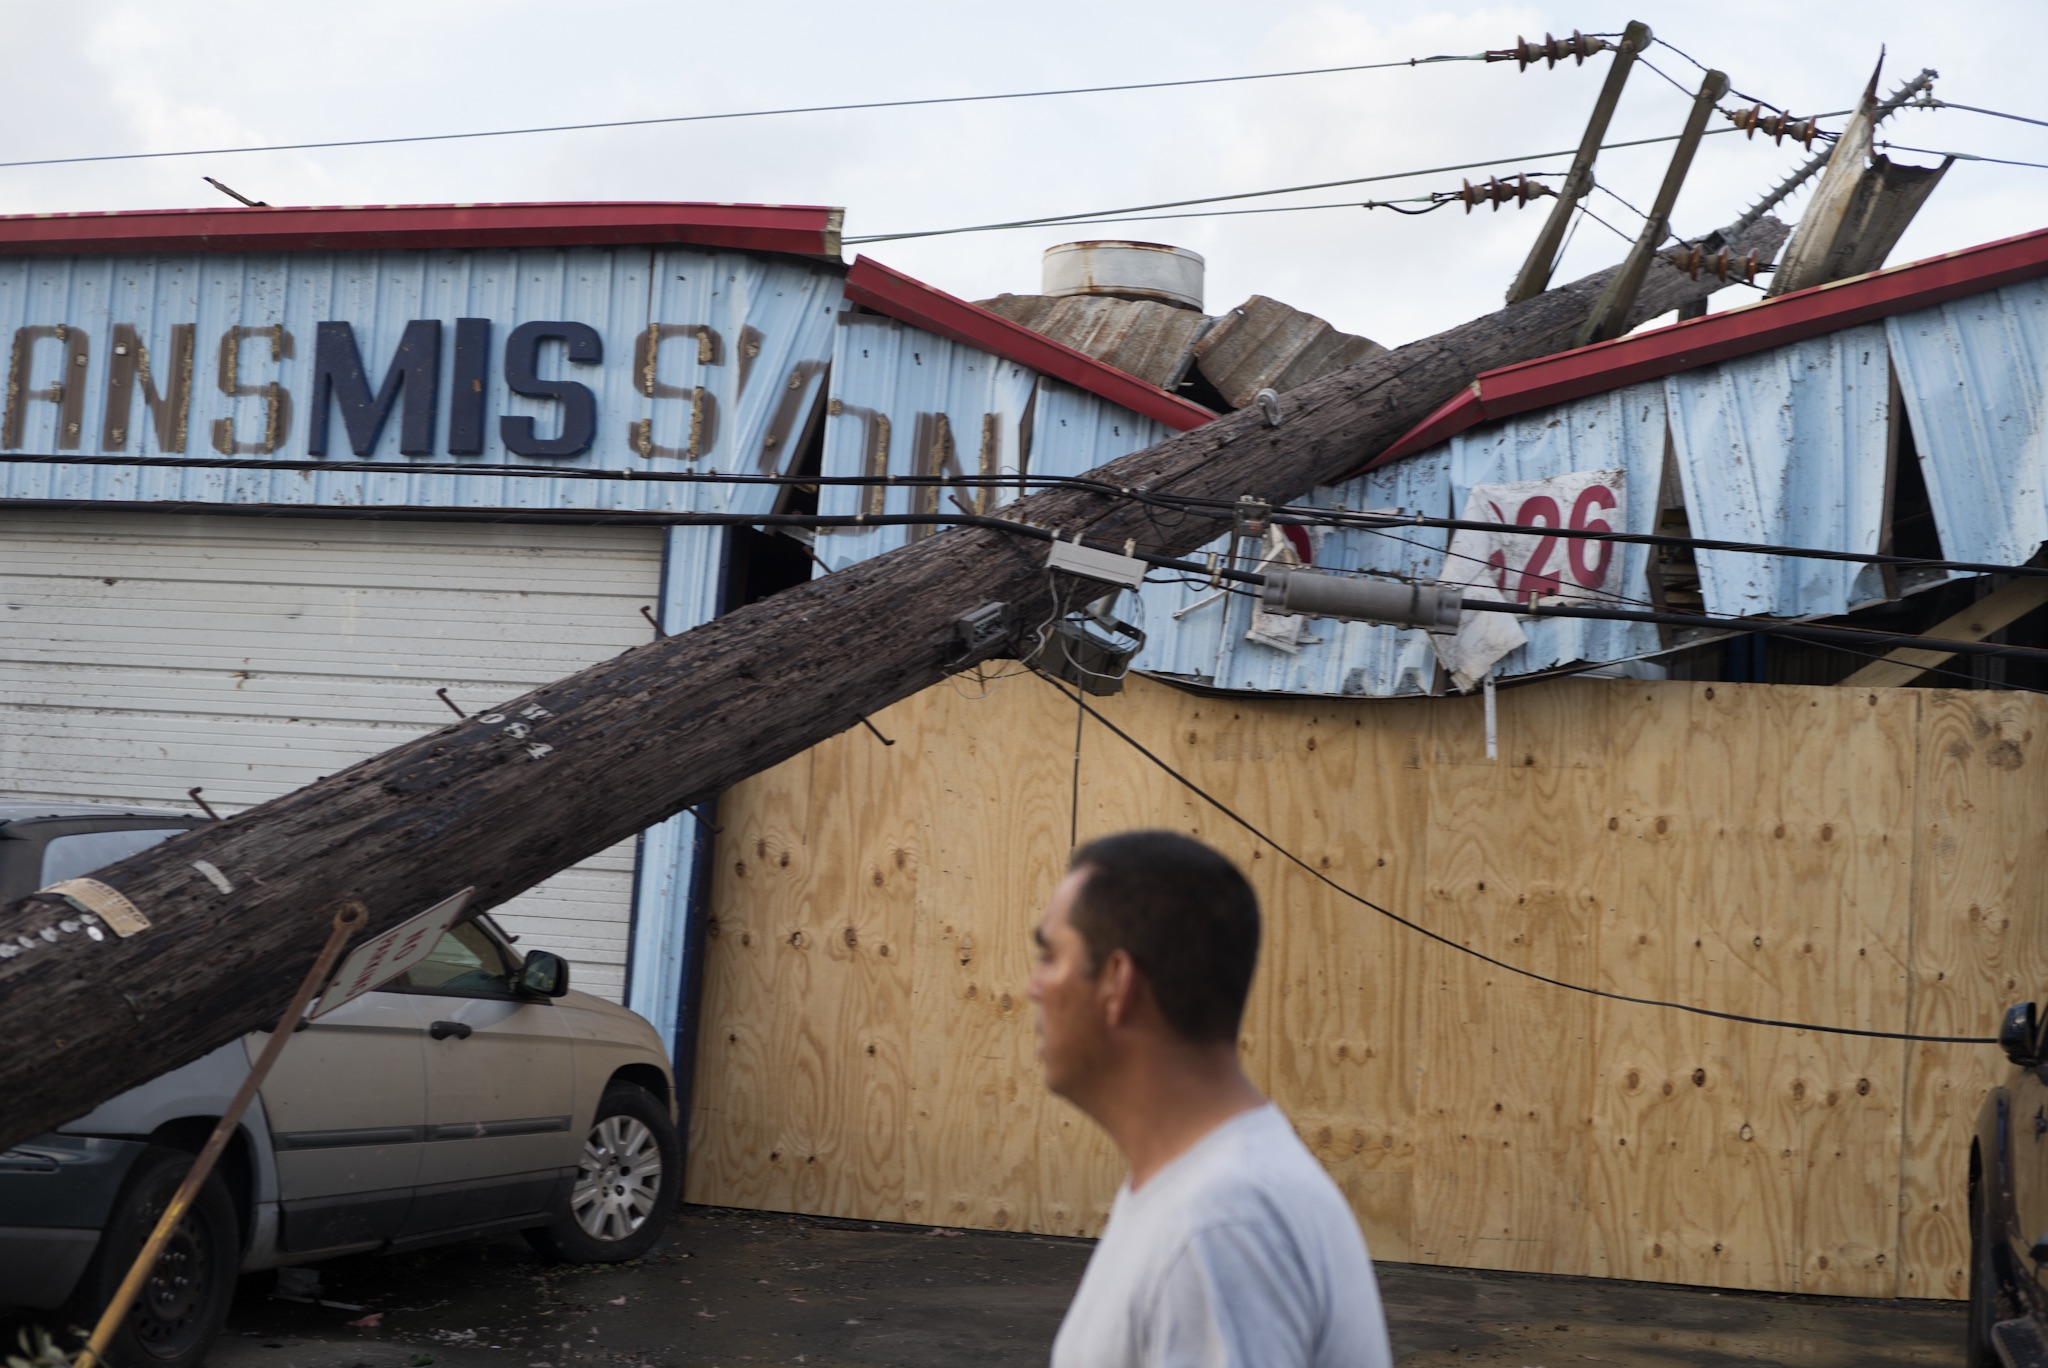 While many business along Chef Menteur Highway were spared direct damage from the tornado, several fell victim to the domino like topple of power lines.